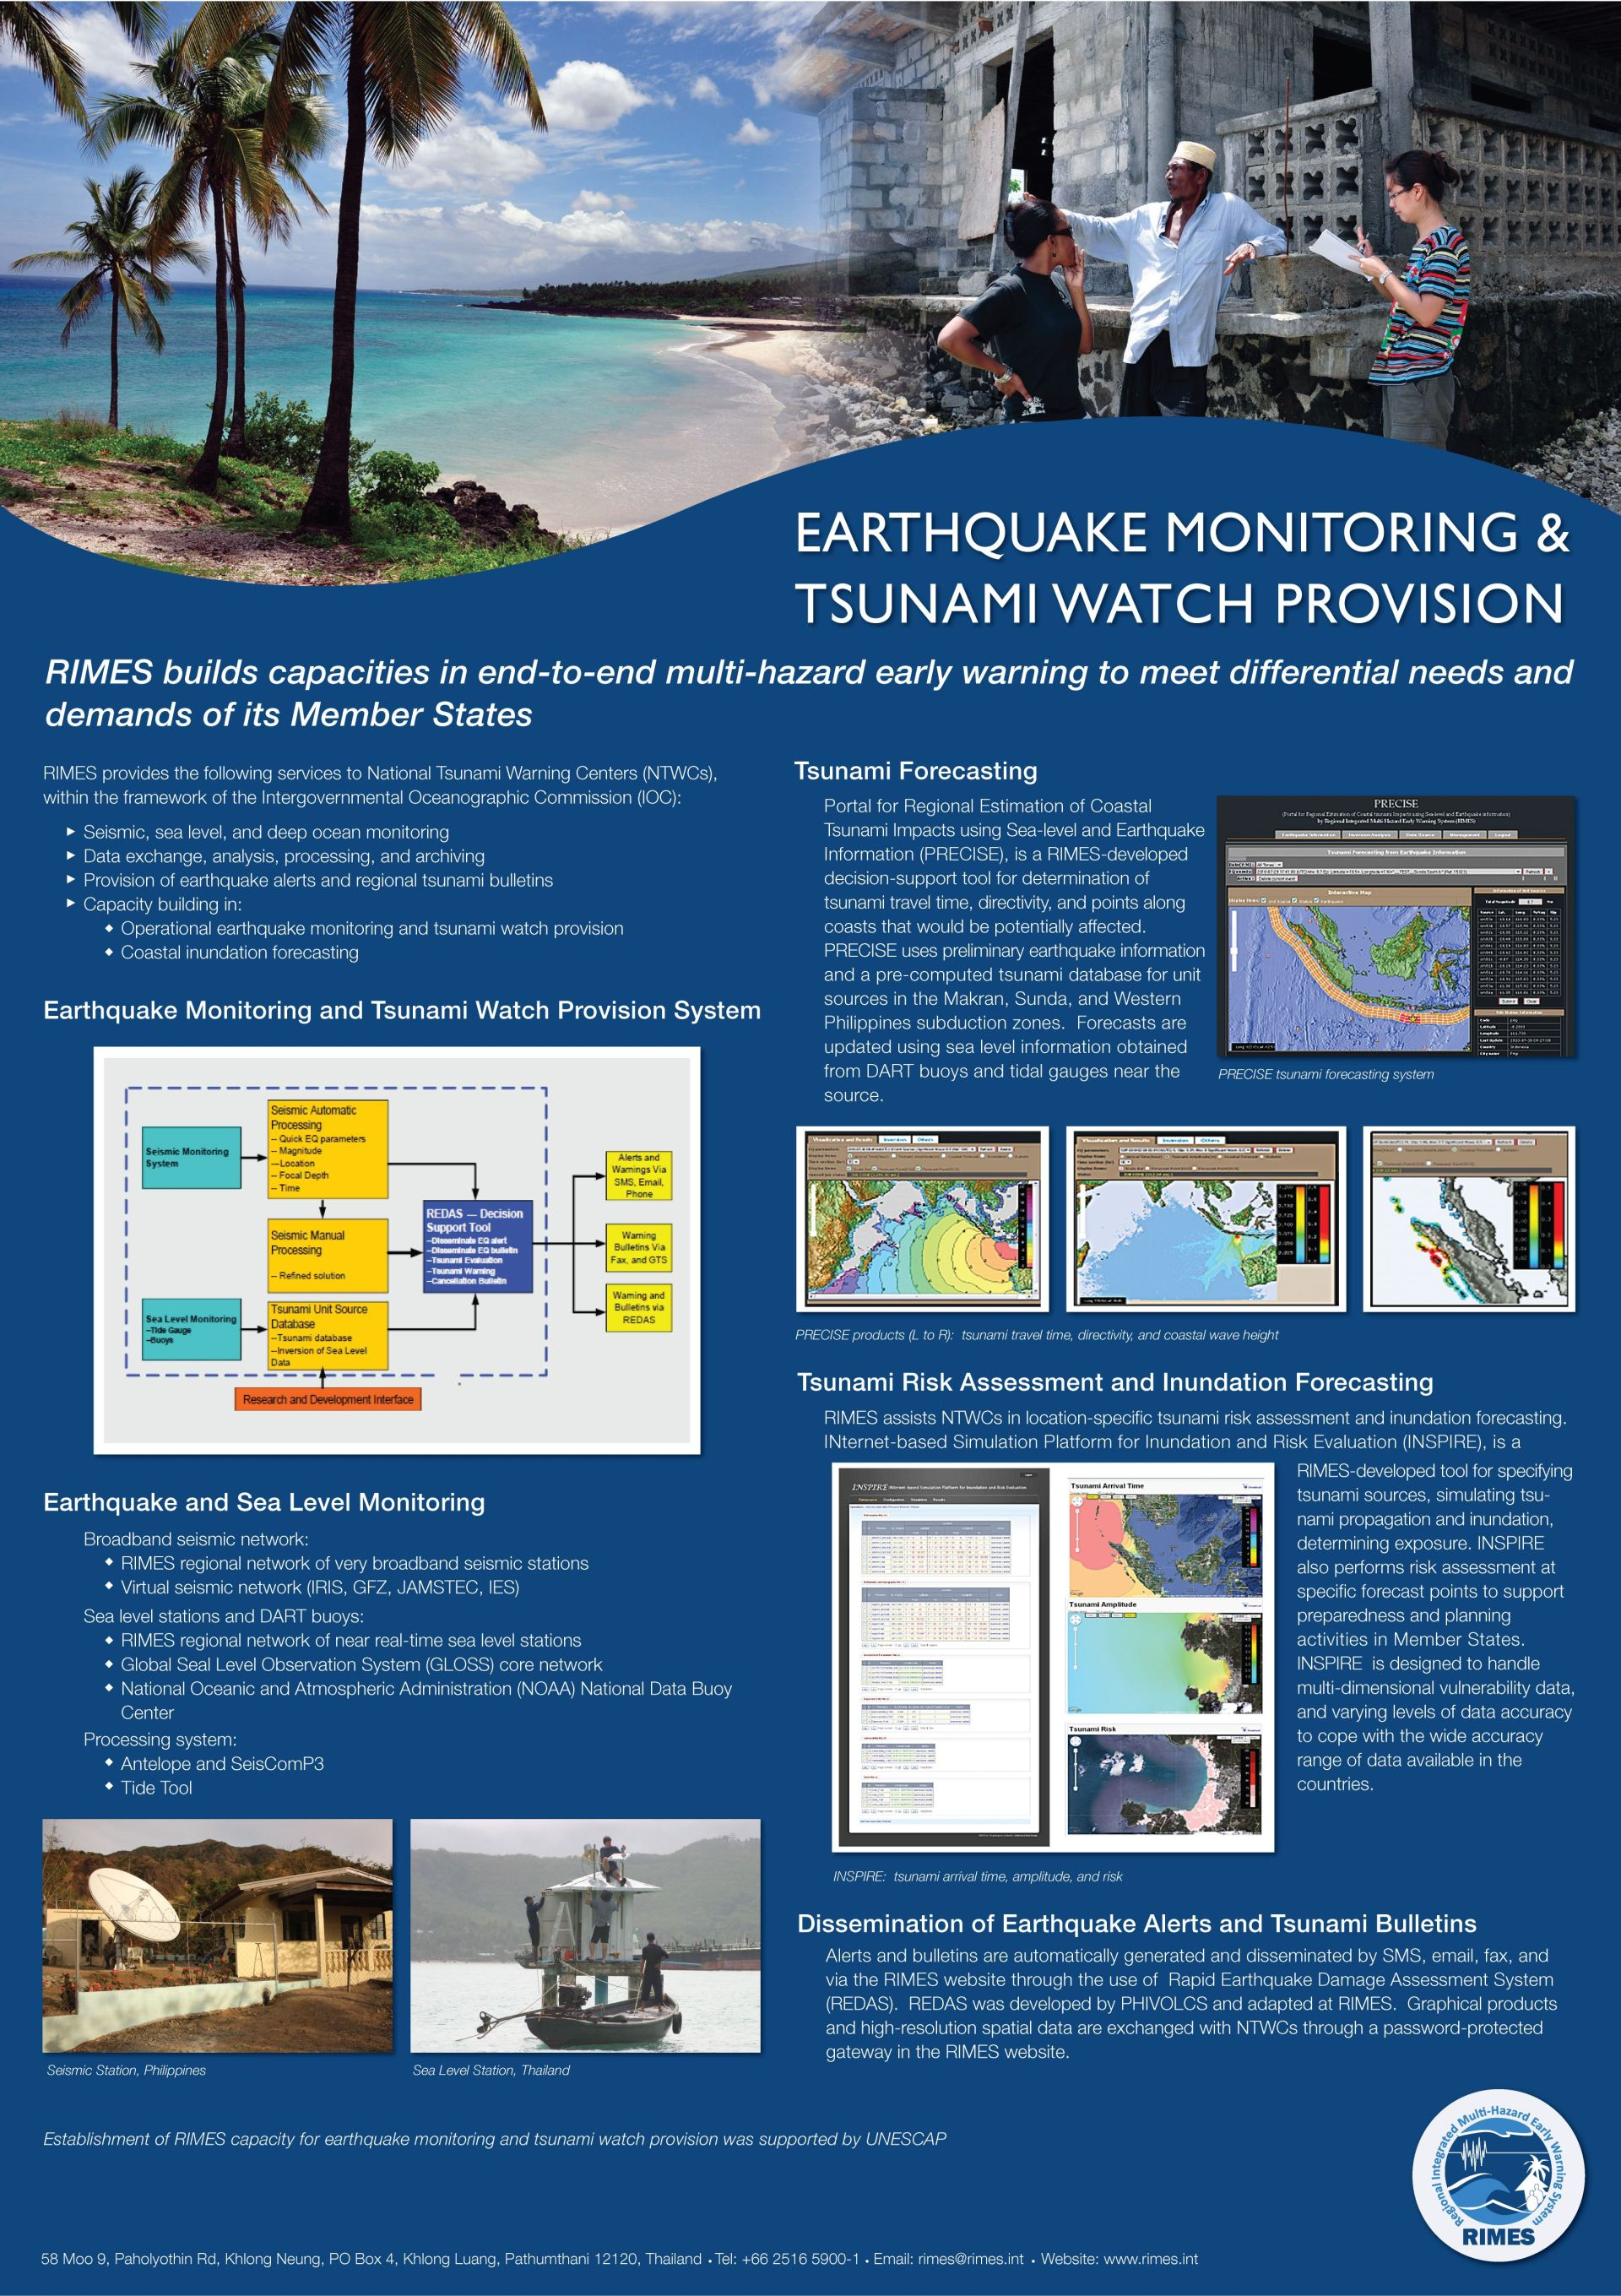 Earthquake and Tsunami Services